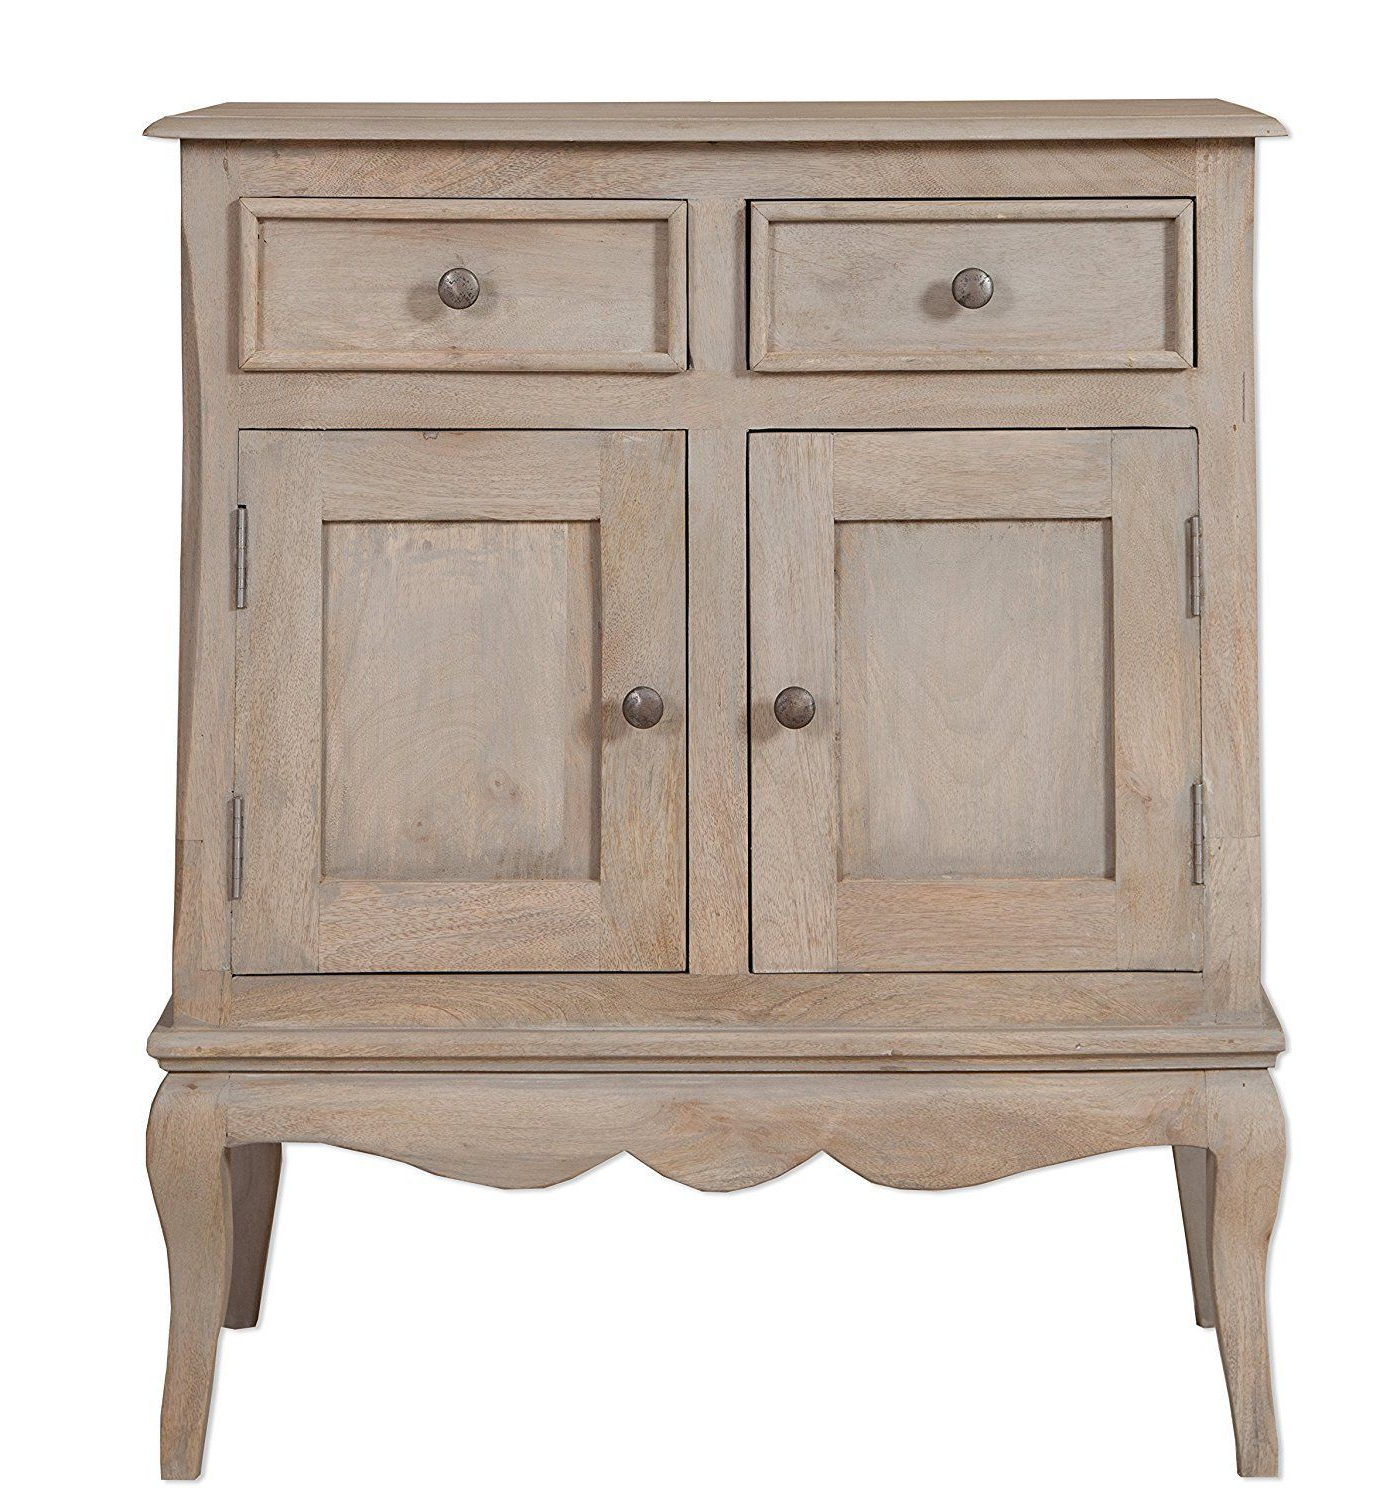 Loire French Grey Solid Mango Wood 2 Door 2 Drawer Hallway Cabinet Throughout Most Up To Date Mango Wood 2 Door/2 Drawer Sideboards (Gallery 11 of 20)